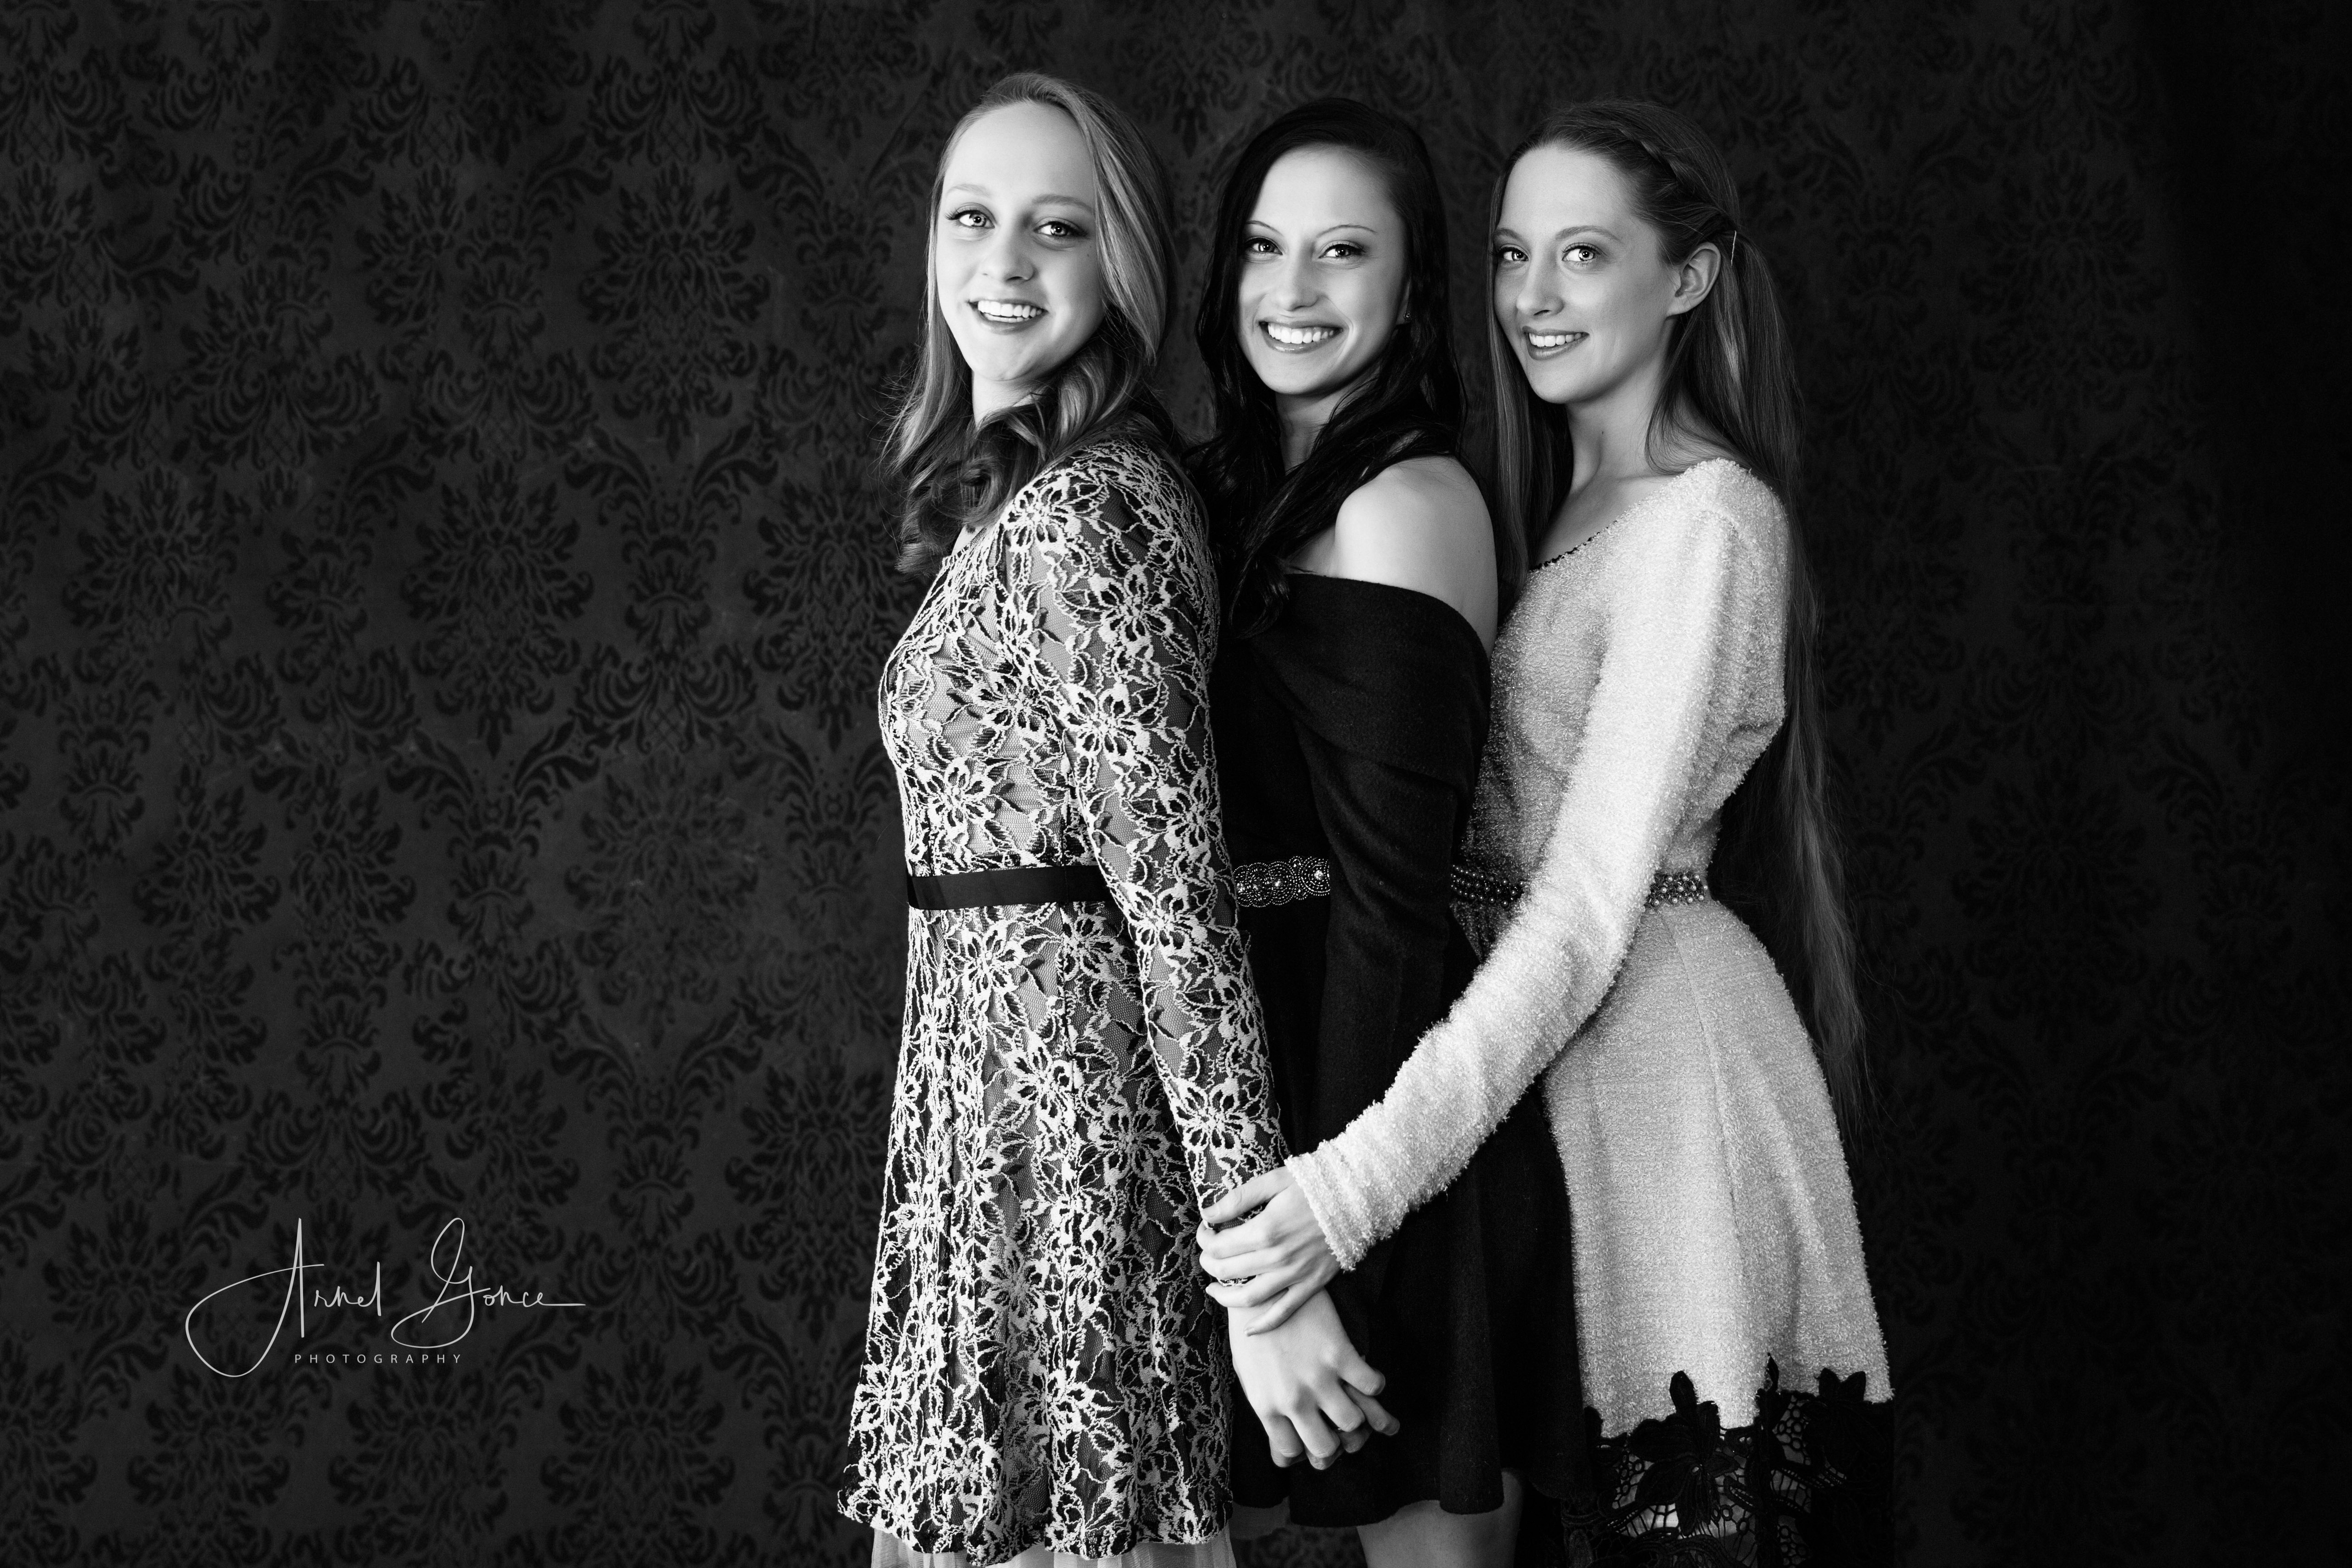 Black and white studio portrait photography session of three sisters. Subjects wearing Seasonal Party dresses by Altar'd States. Shot with a 5DMIII with a Canon 24-70MM L f/2.8 lens. Canvas backdrop with design. Shot by Arnel Gonce Photography Studio